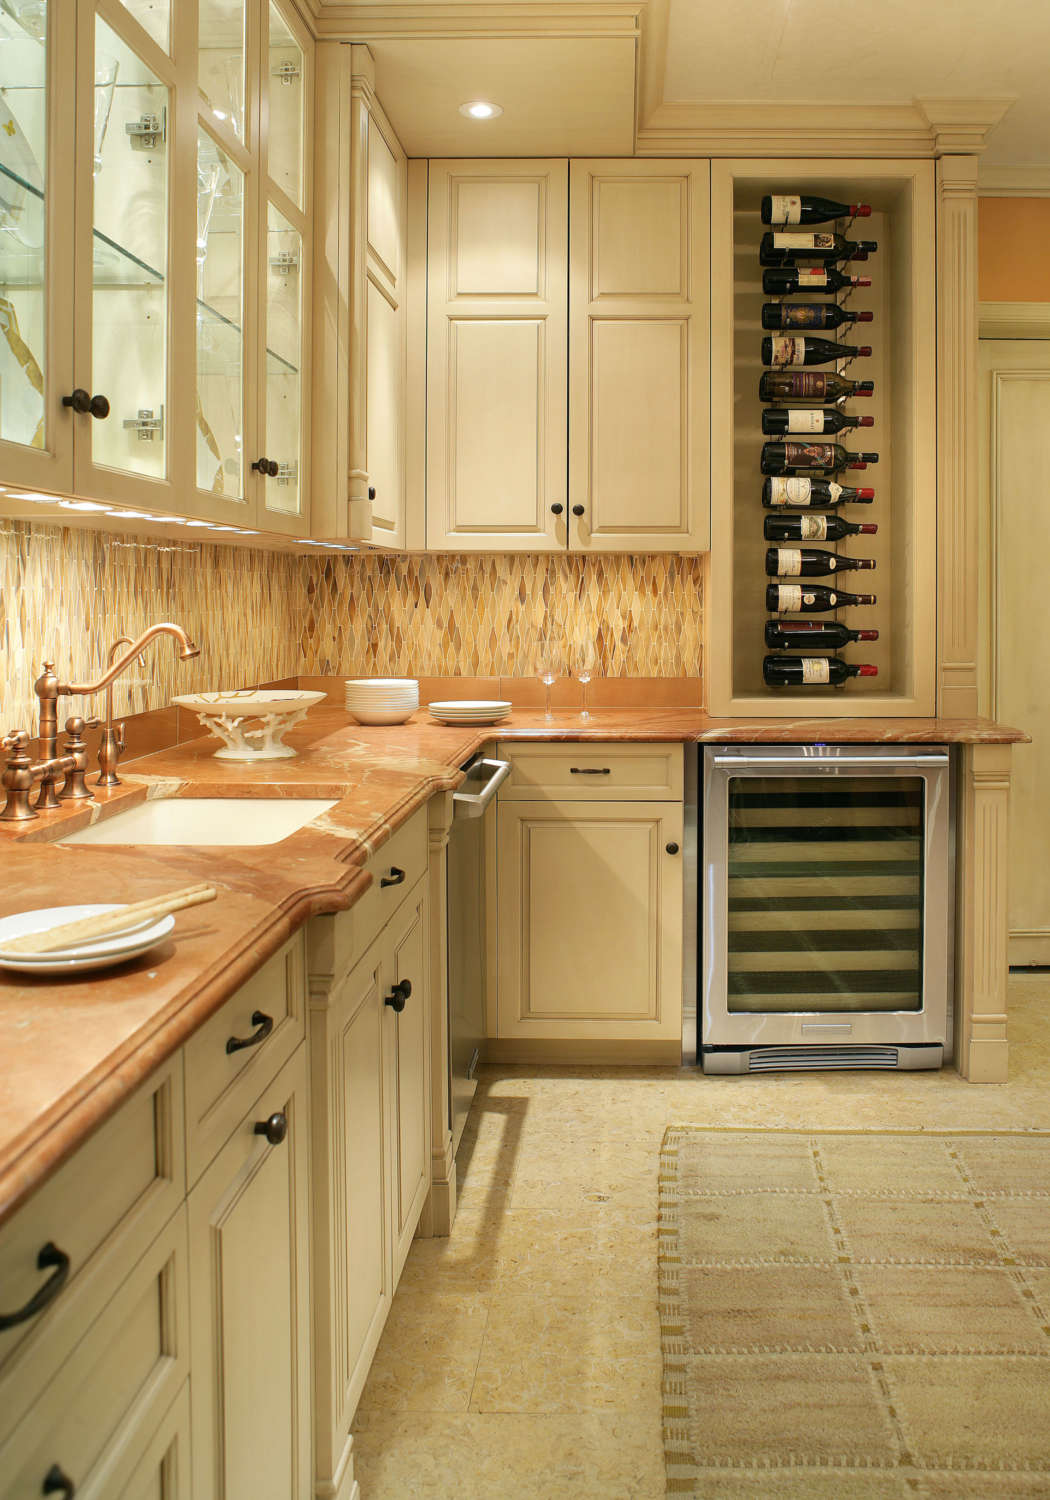 Butler's pantry features linen white painted fully custom, frameless Rutt handcrafted cabinets with glass fronts and oil-rubbed bronze hardware, vertical wine rack, toffee-colored marble countertops, bronze faucet and neutral warm-toned backsplash and floor tiles. Design by Regina Bilotta of Bilotta Kitchens.